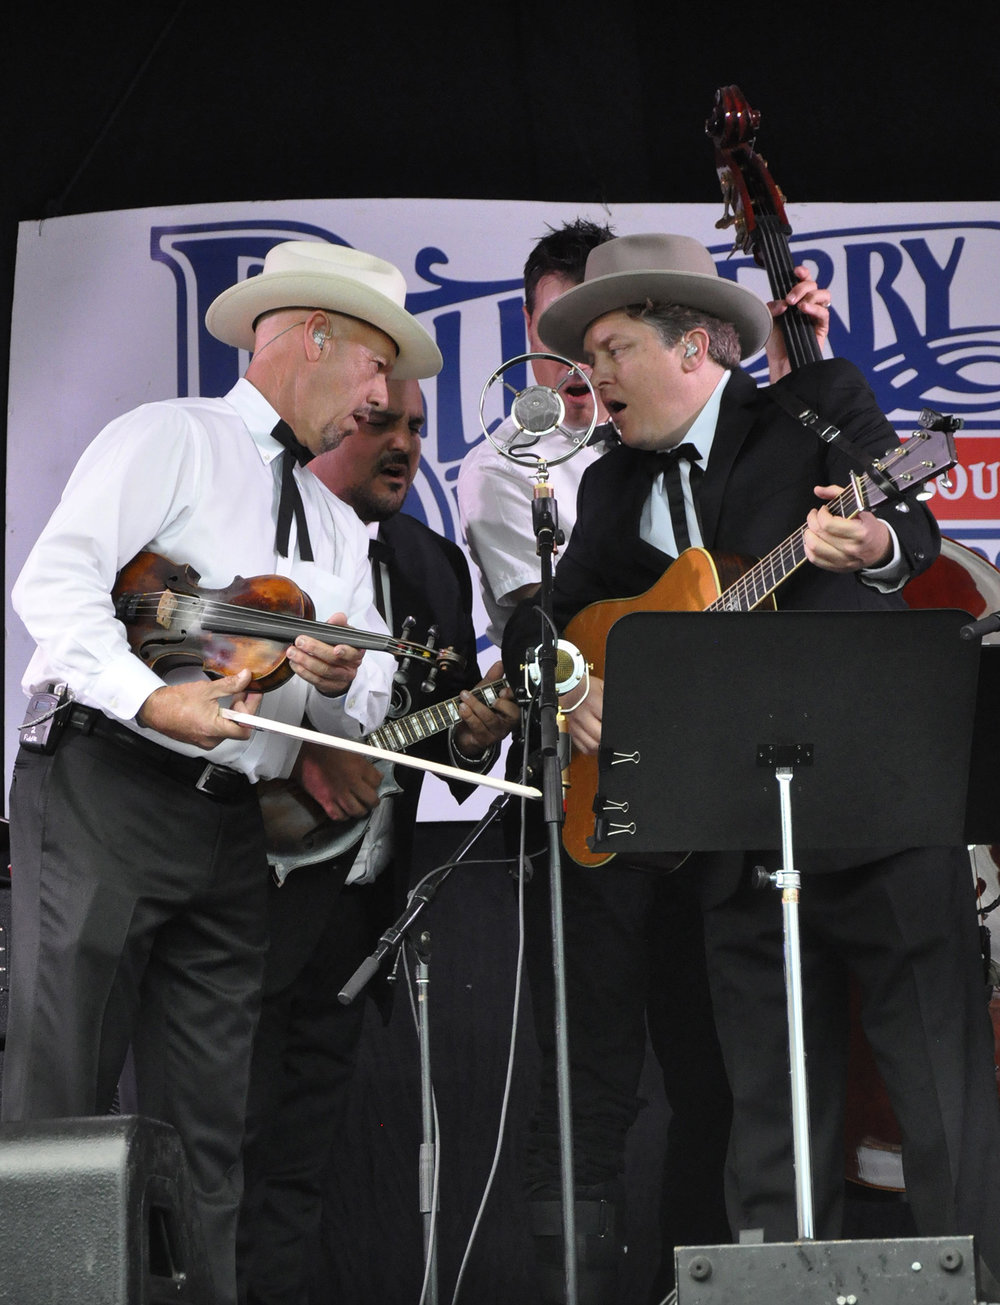 Johnny Warren, Frank Solivan, Barry Bales & Shawn Camp of The Earls of Leicester